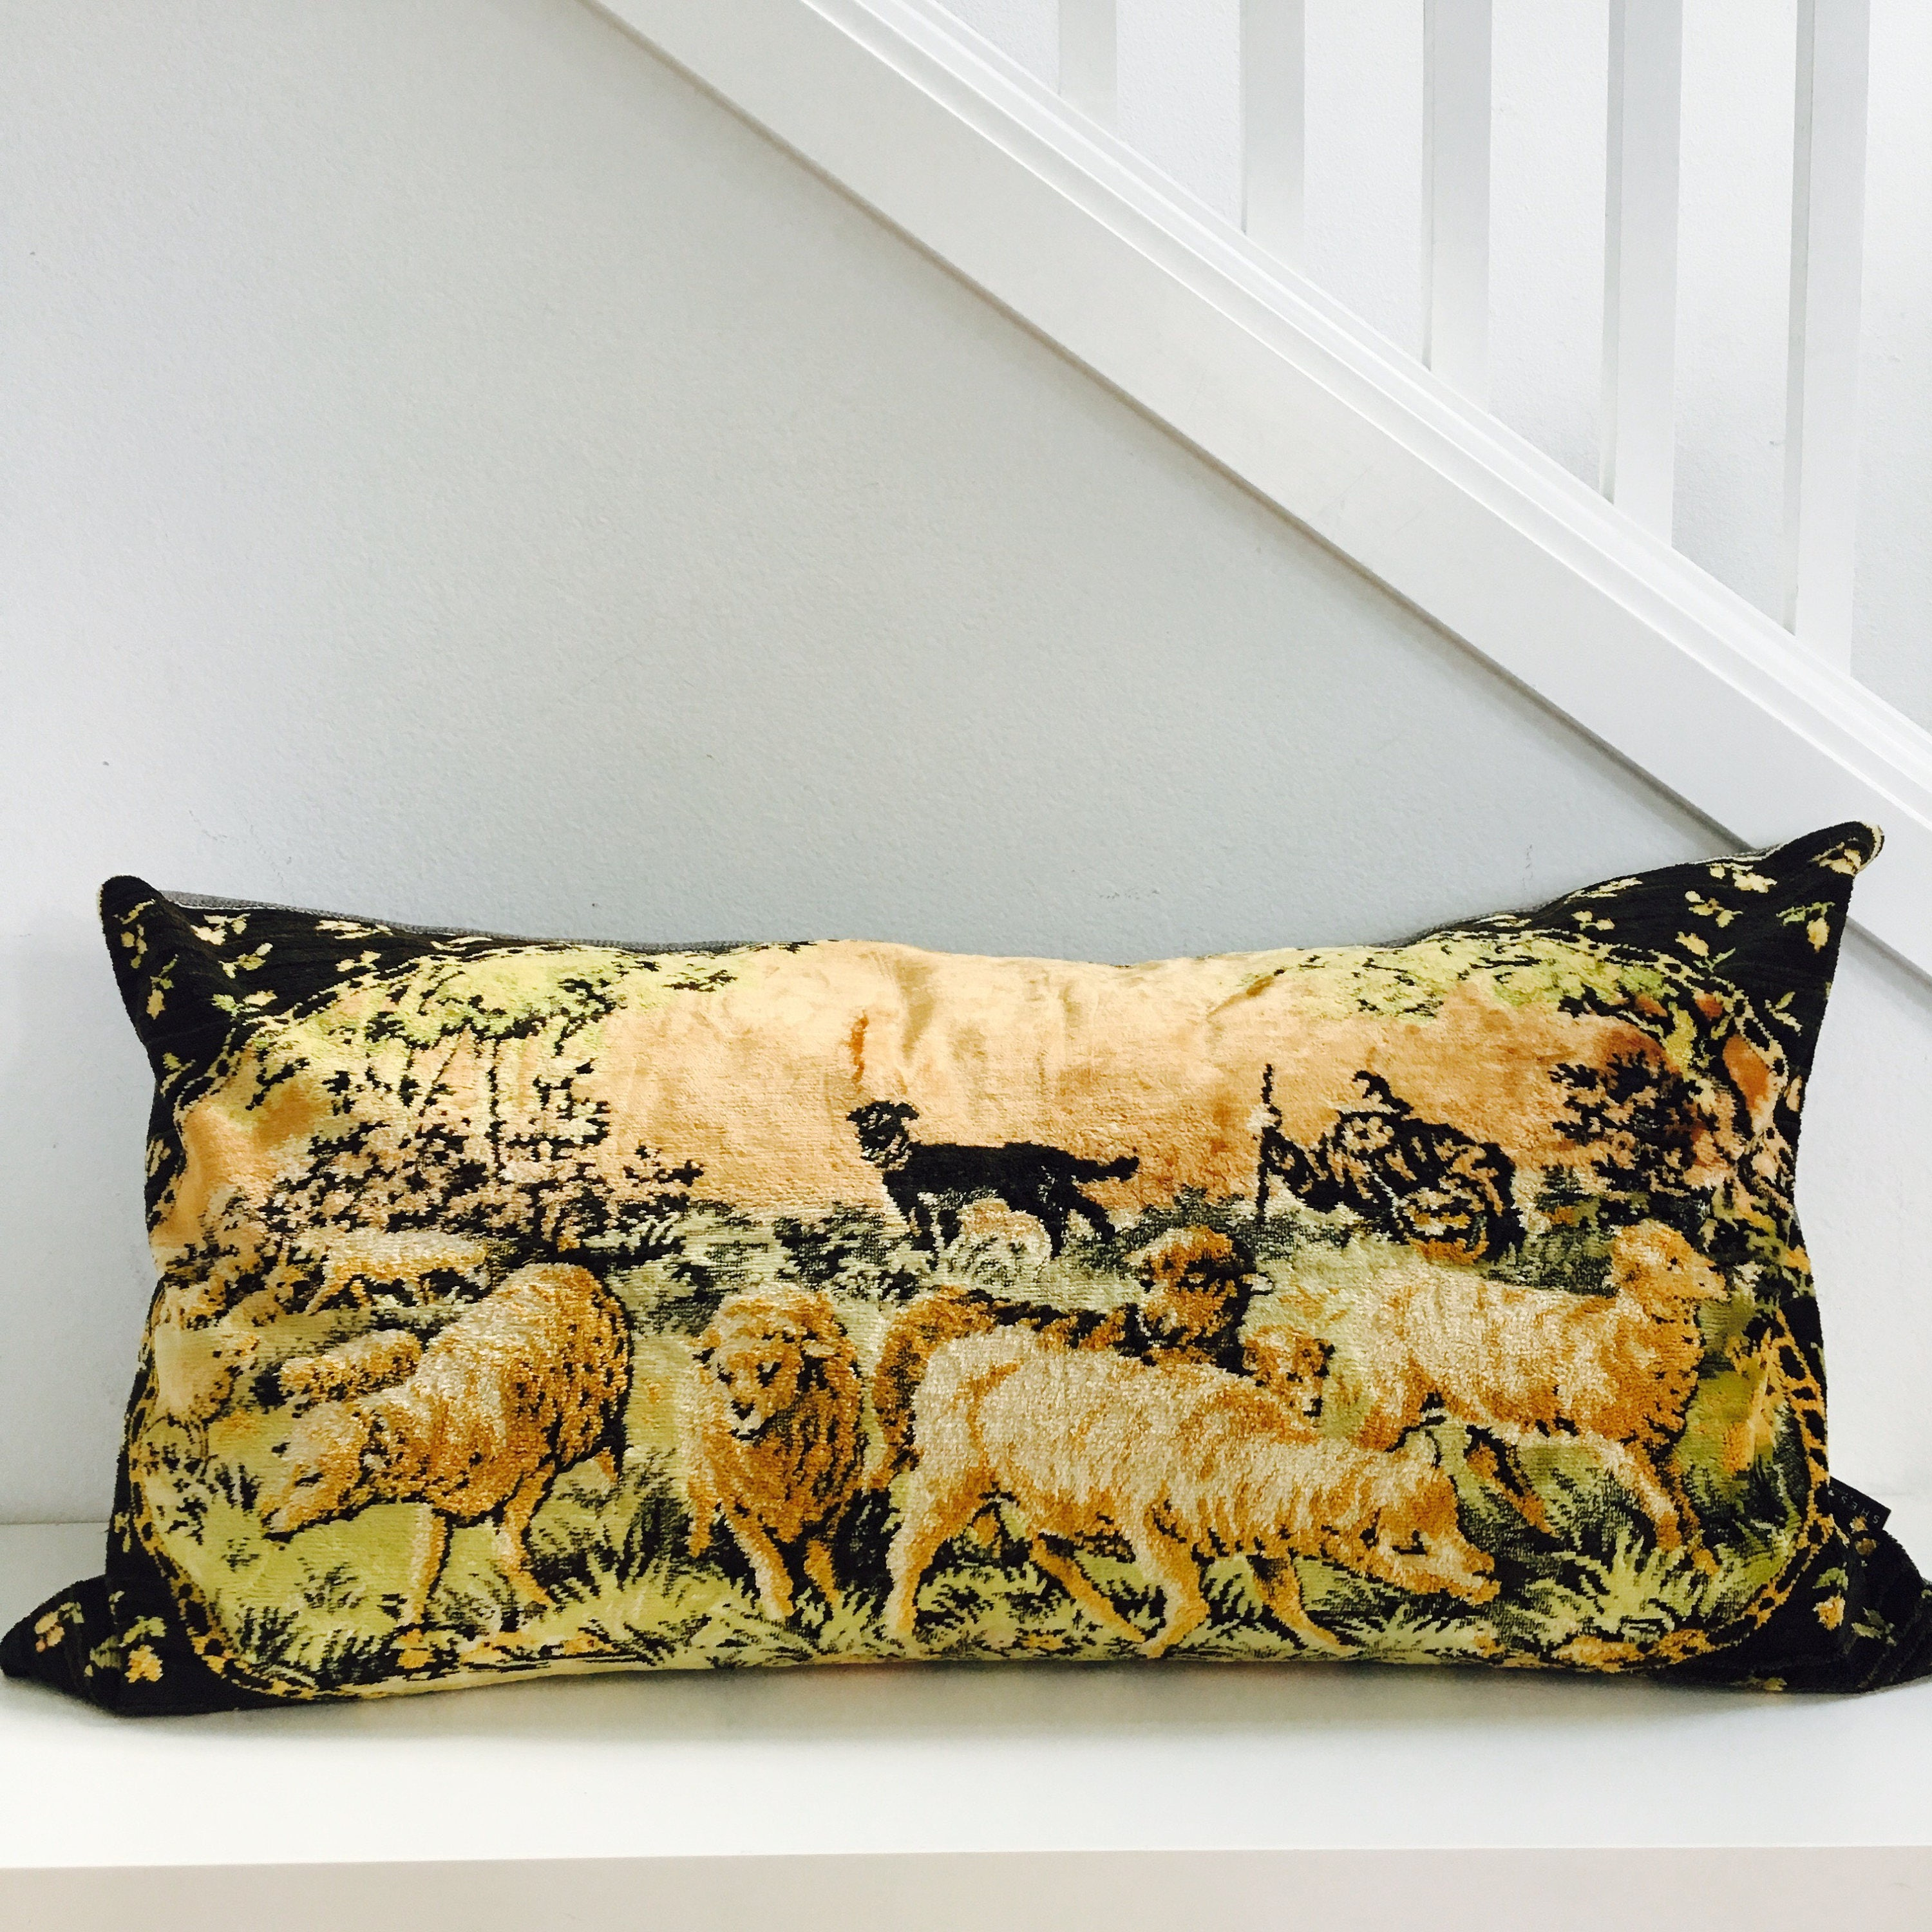 Velvet Sheep Herder Scene Boho Pillow Cover 18x36